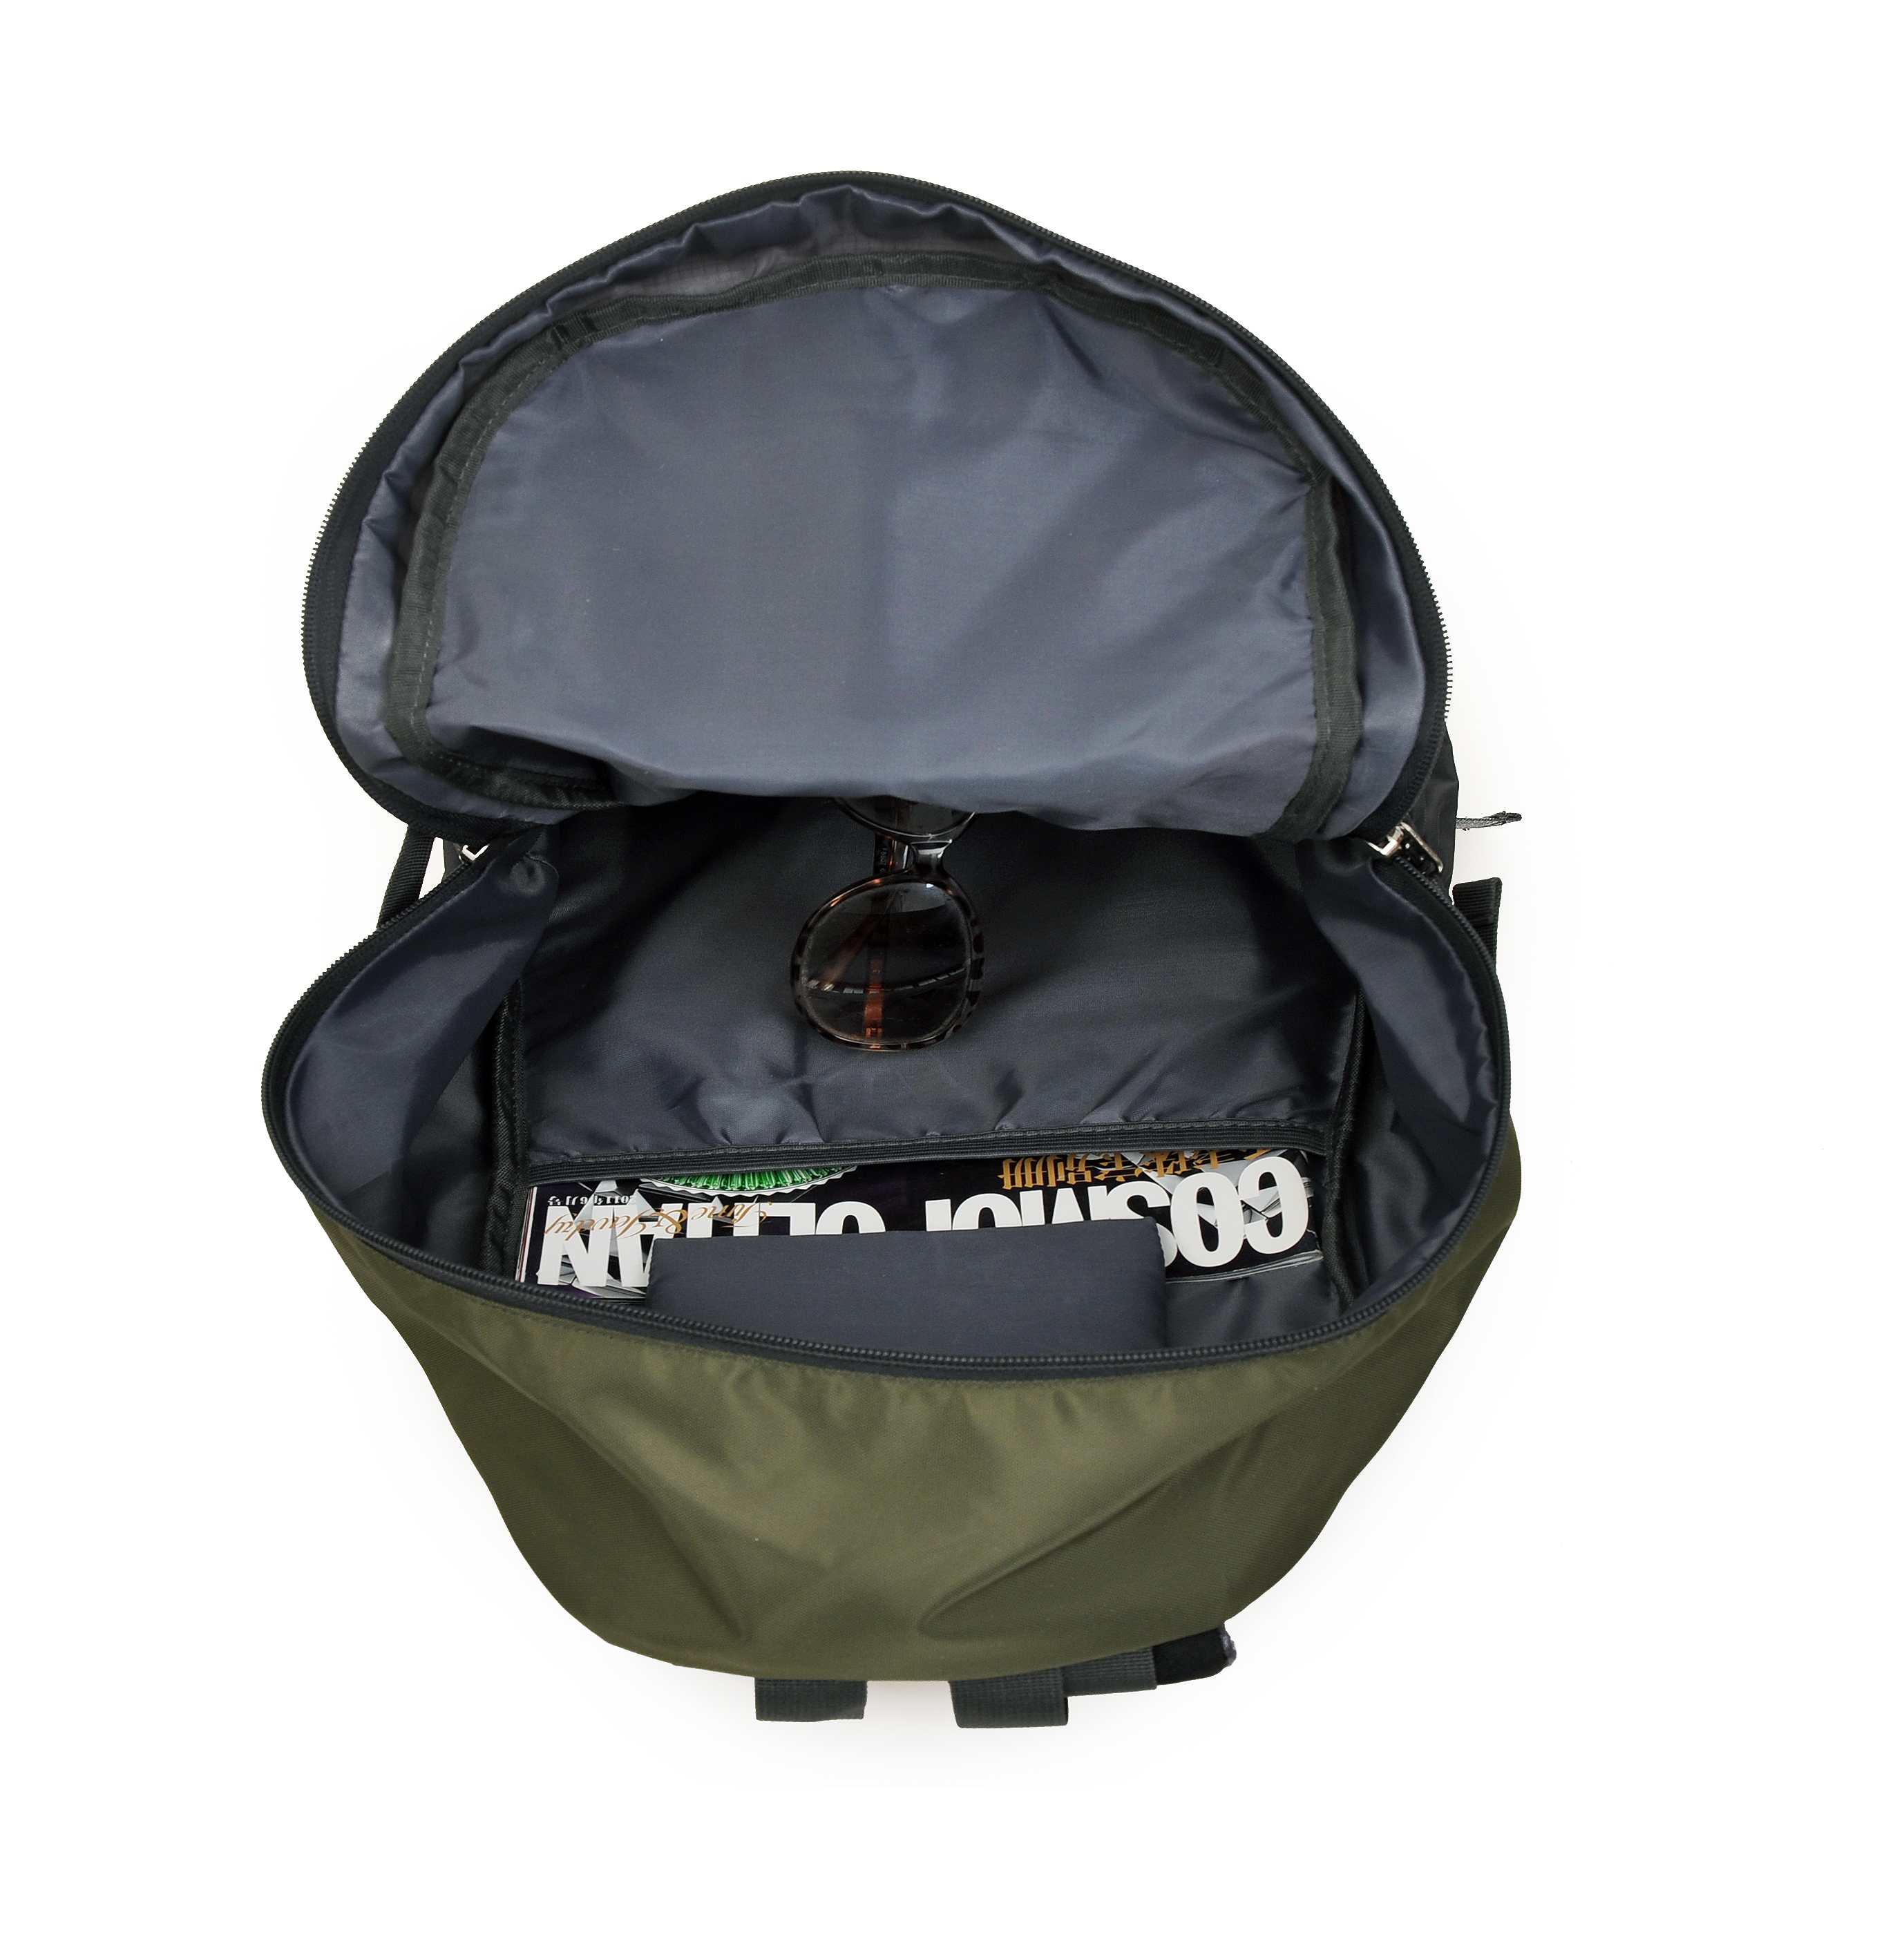 Durable Outdoor Sport Camping Travel Backpack